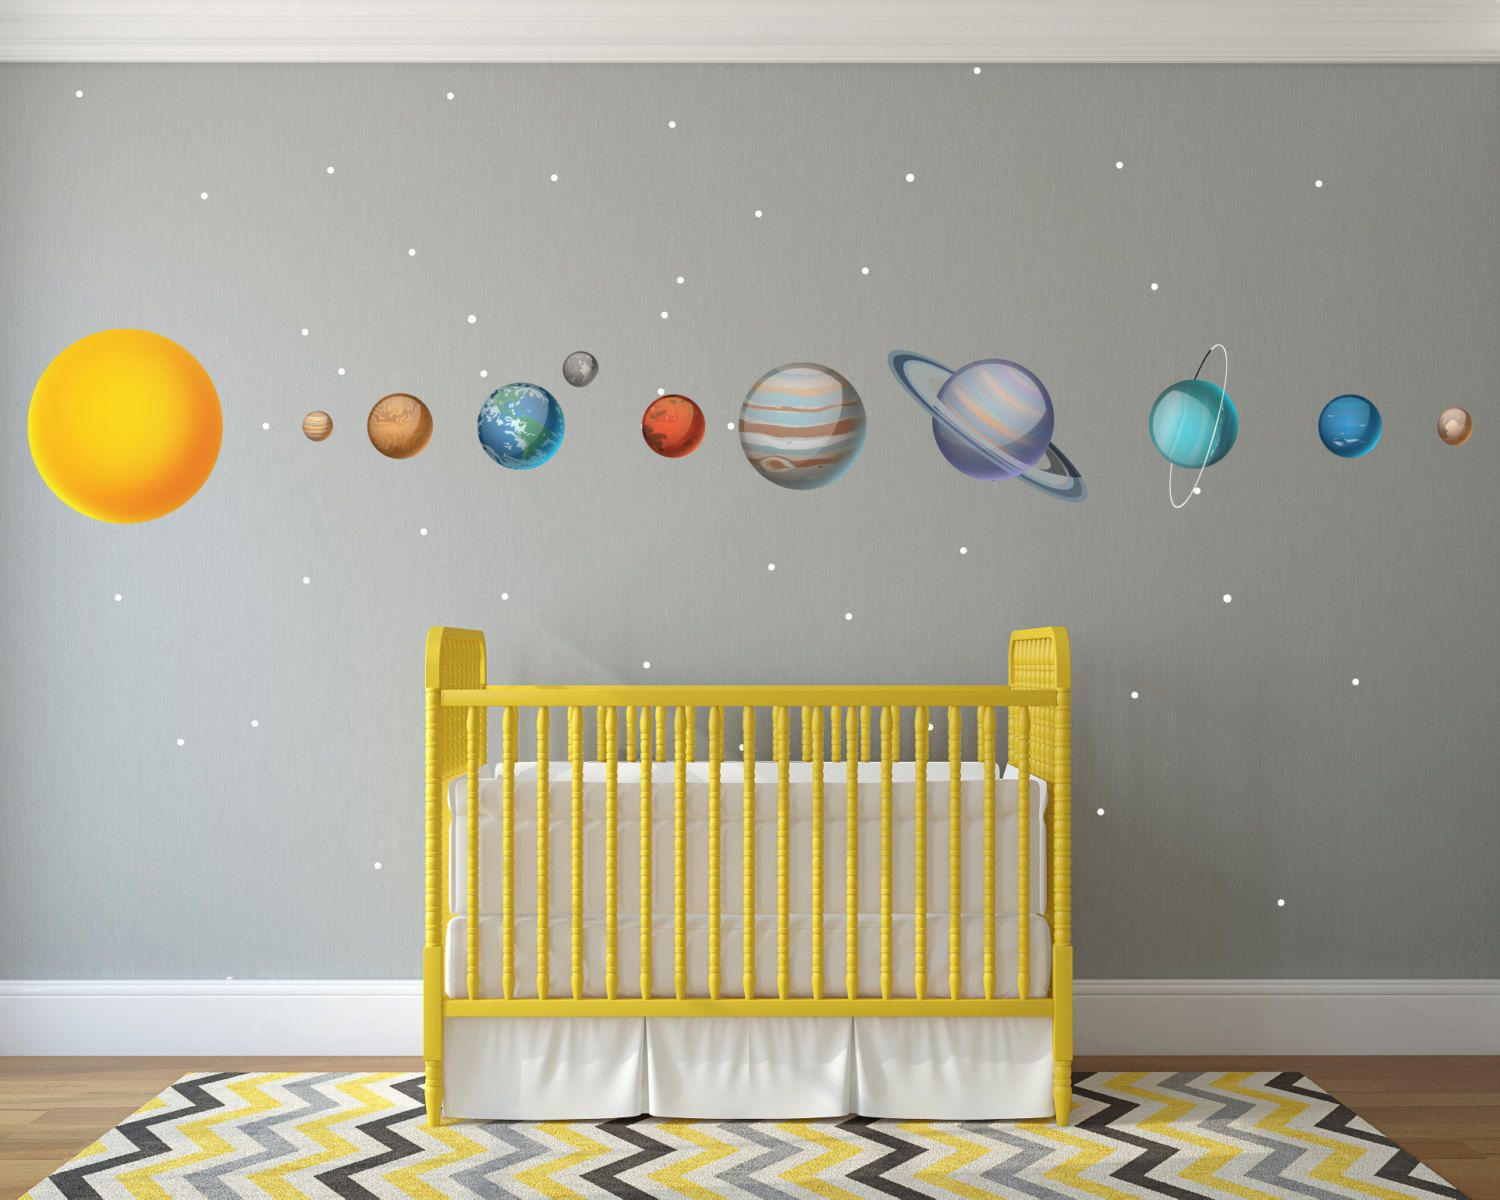 Cool Solar System Wall Decor Ideas - The Wall Art Decorations ...